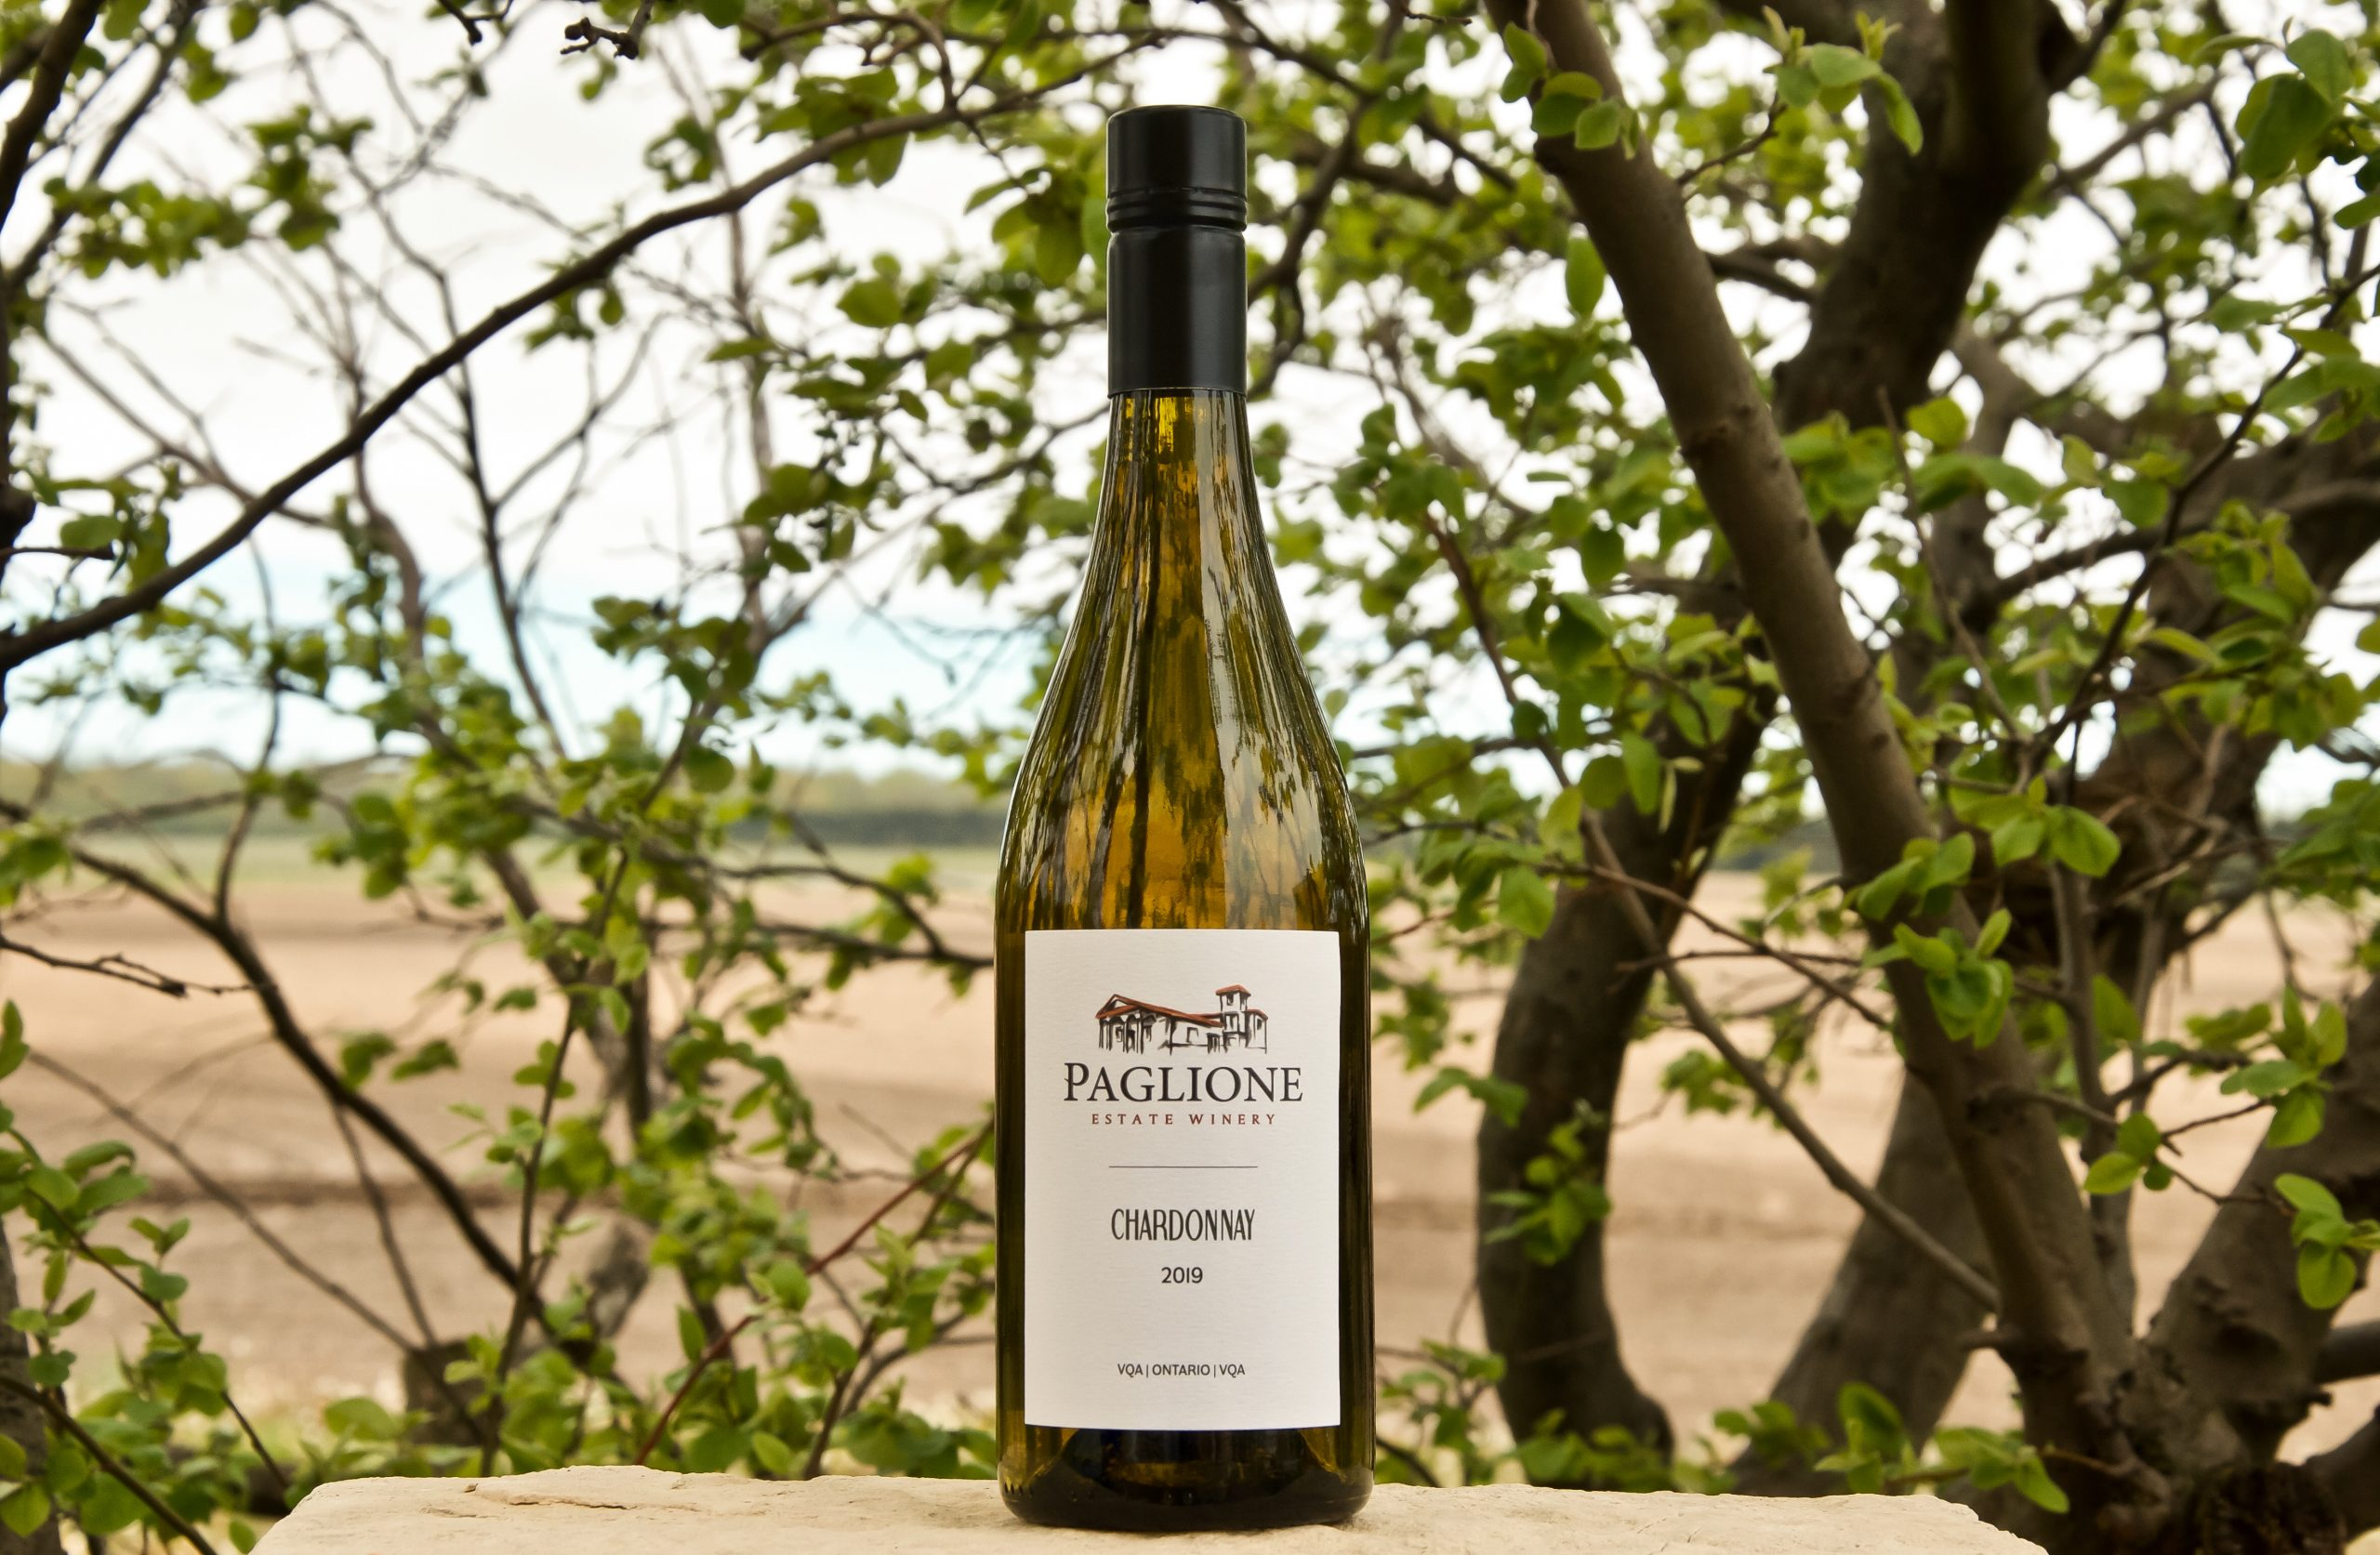 The 2019 Chardonnay from Paglione Estate Winery in Essex, Ontario.